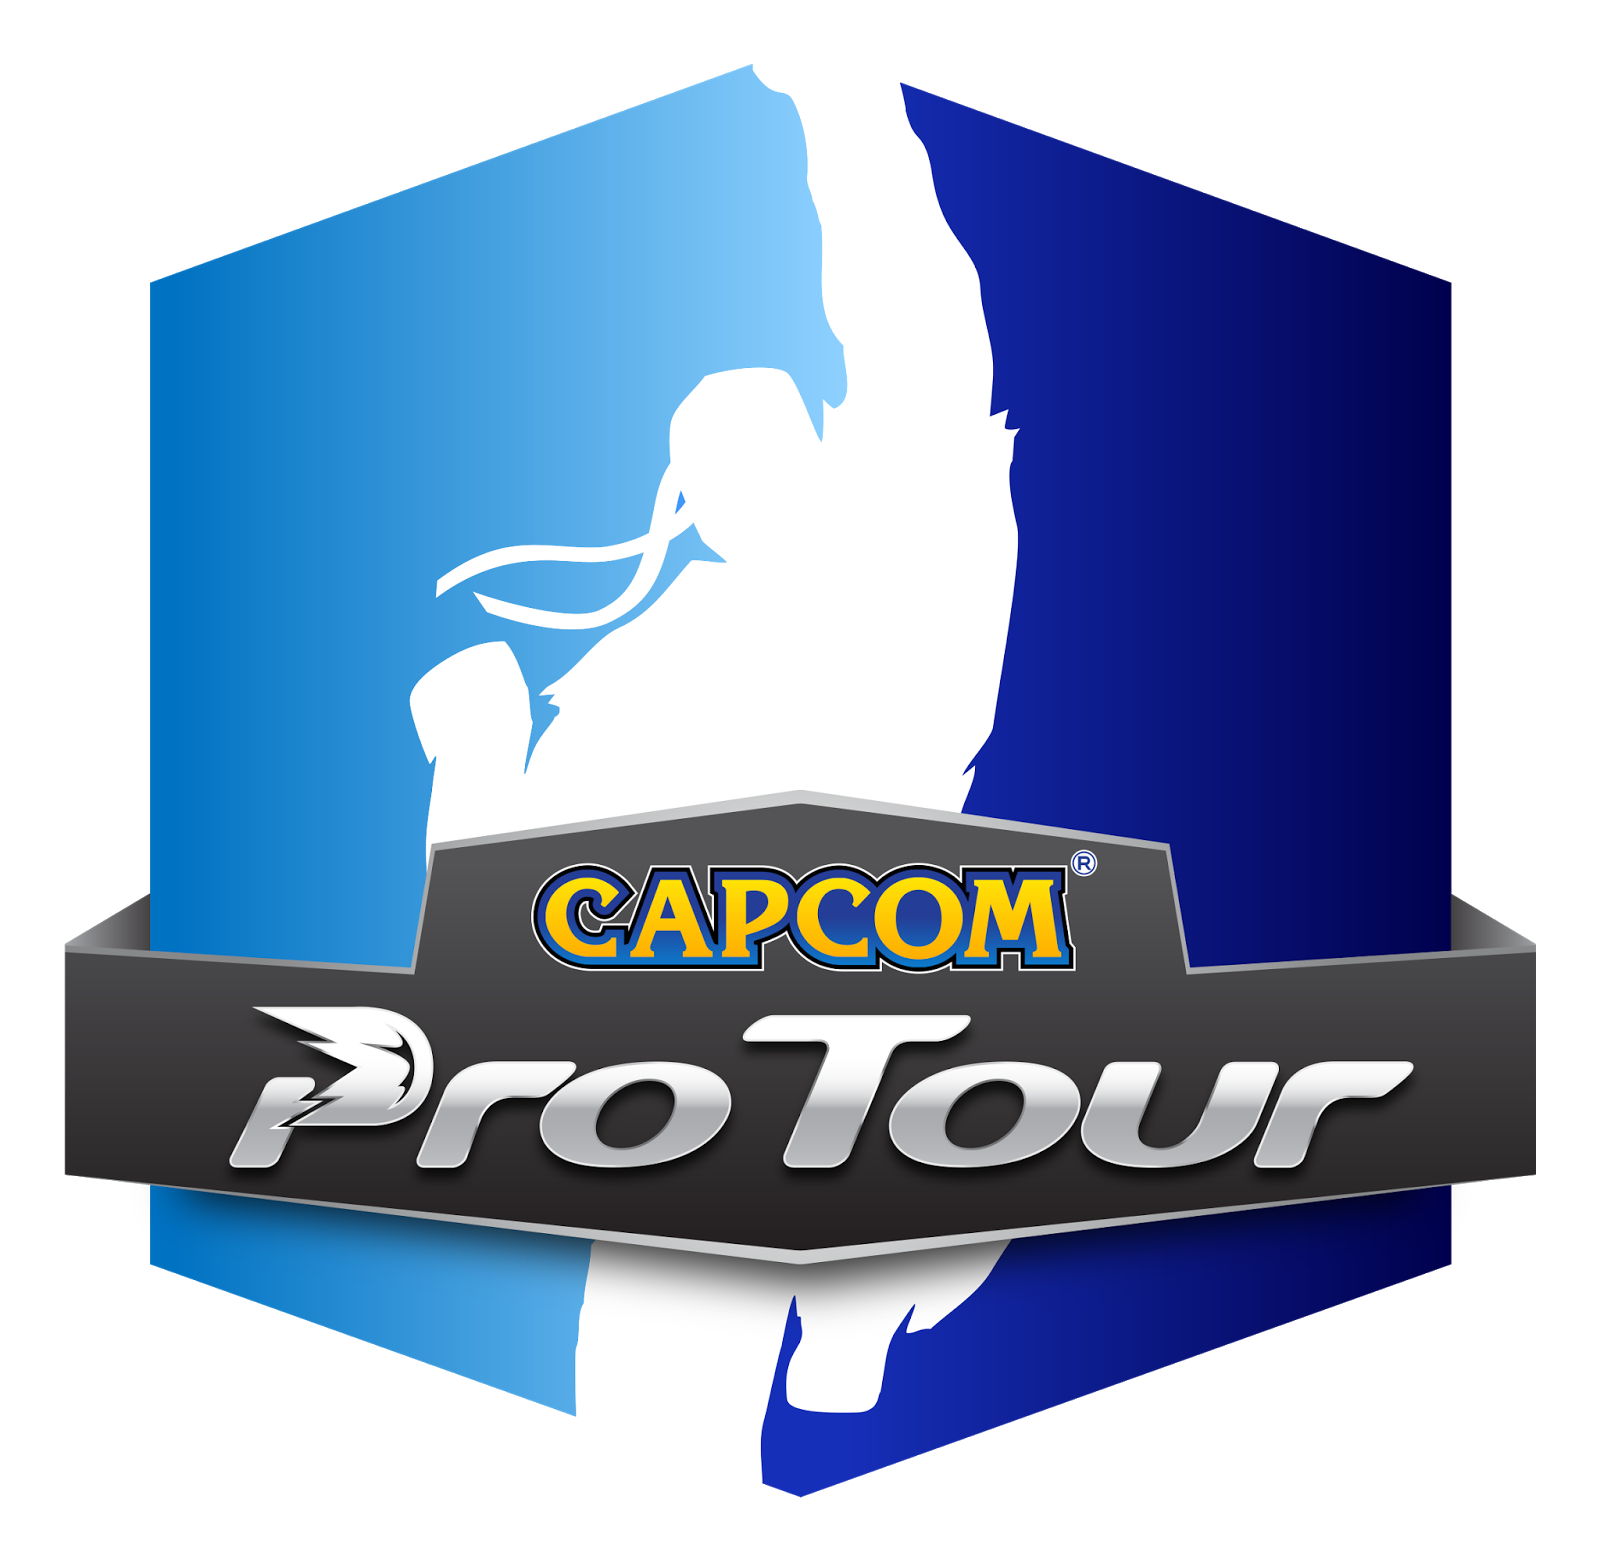 Tournament Street Fighter Twitch Capcom premier events league fighting